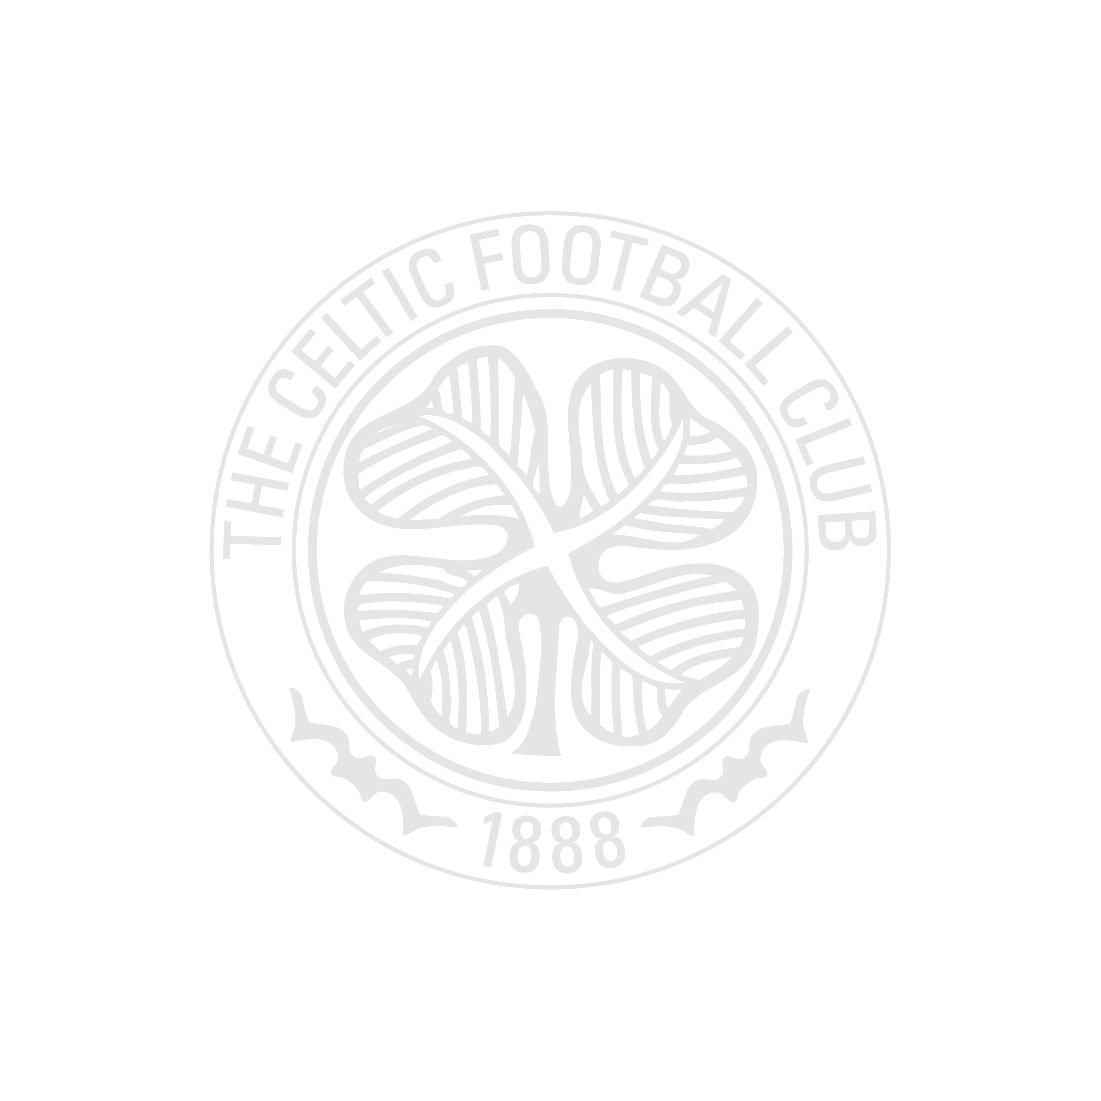 The A-Z of Celtic Football Club DVD